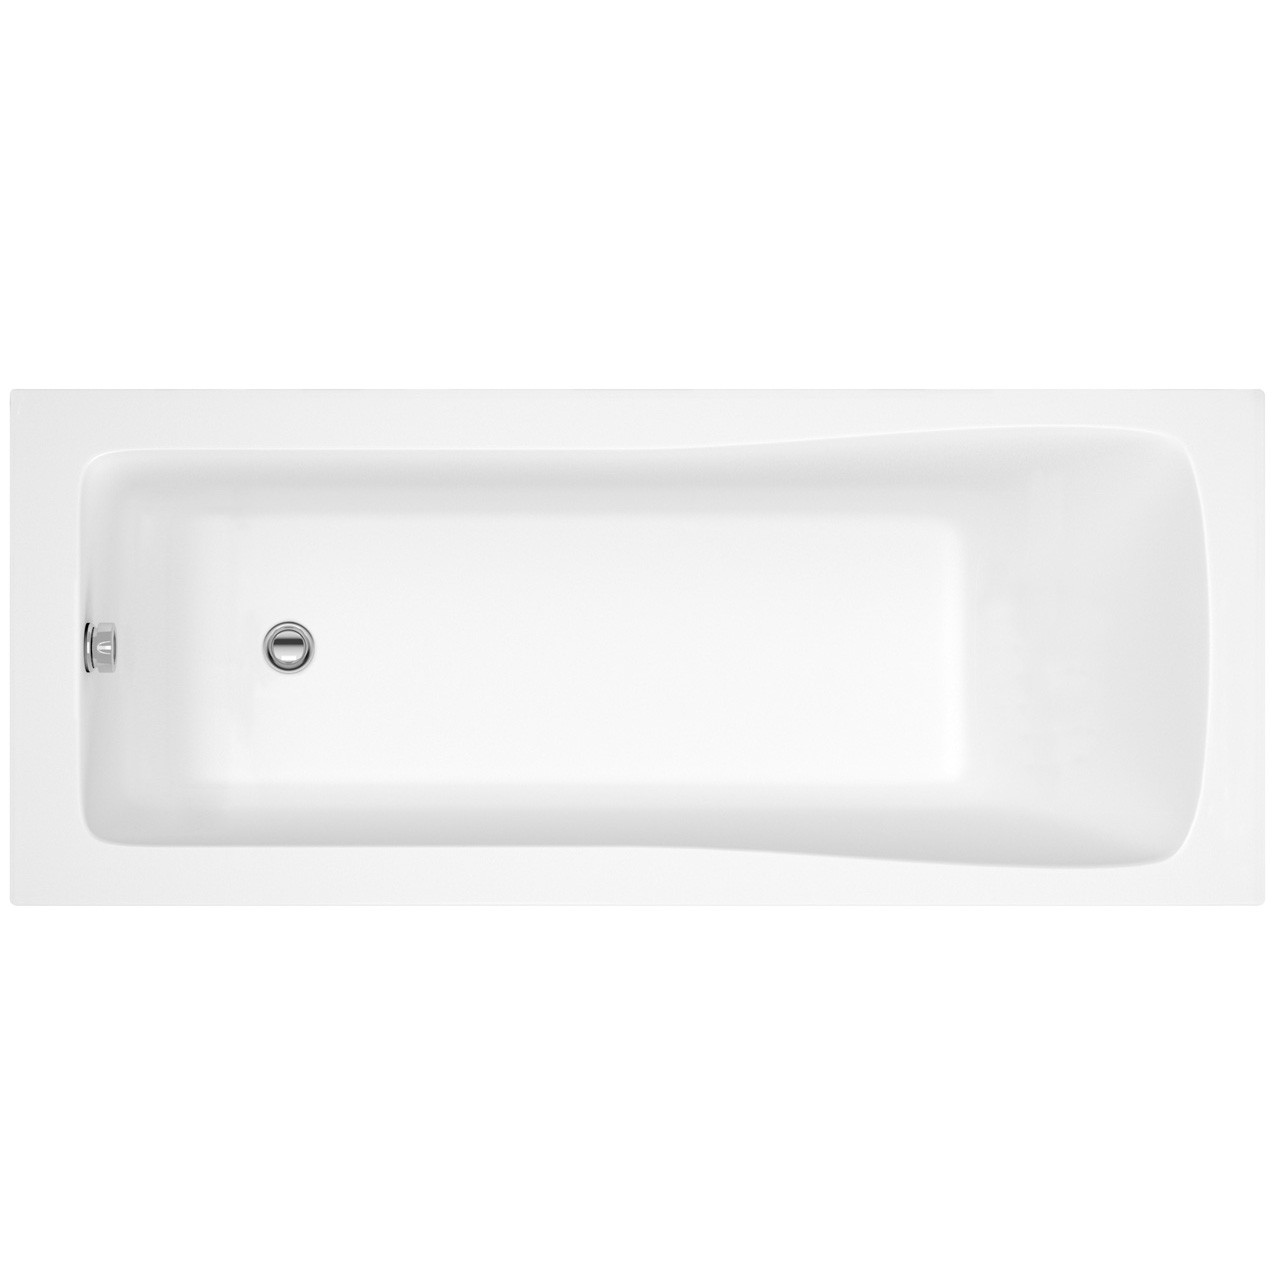 Premier Square Single Ended Bath and Leg Kit 1800mm x 800mm - BMON010